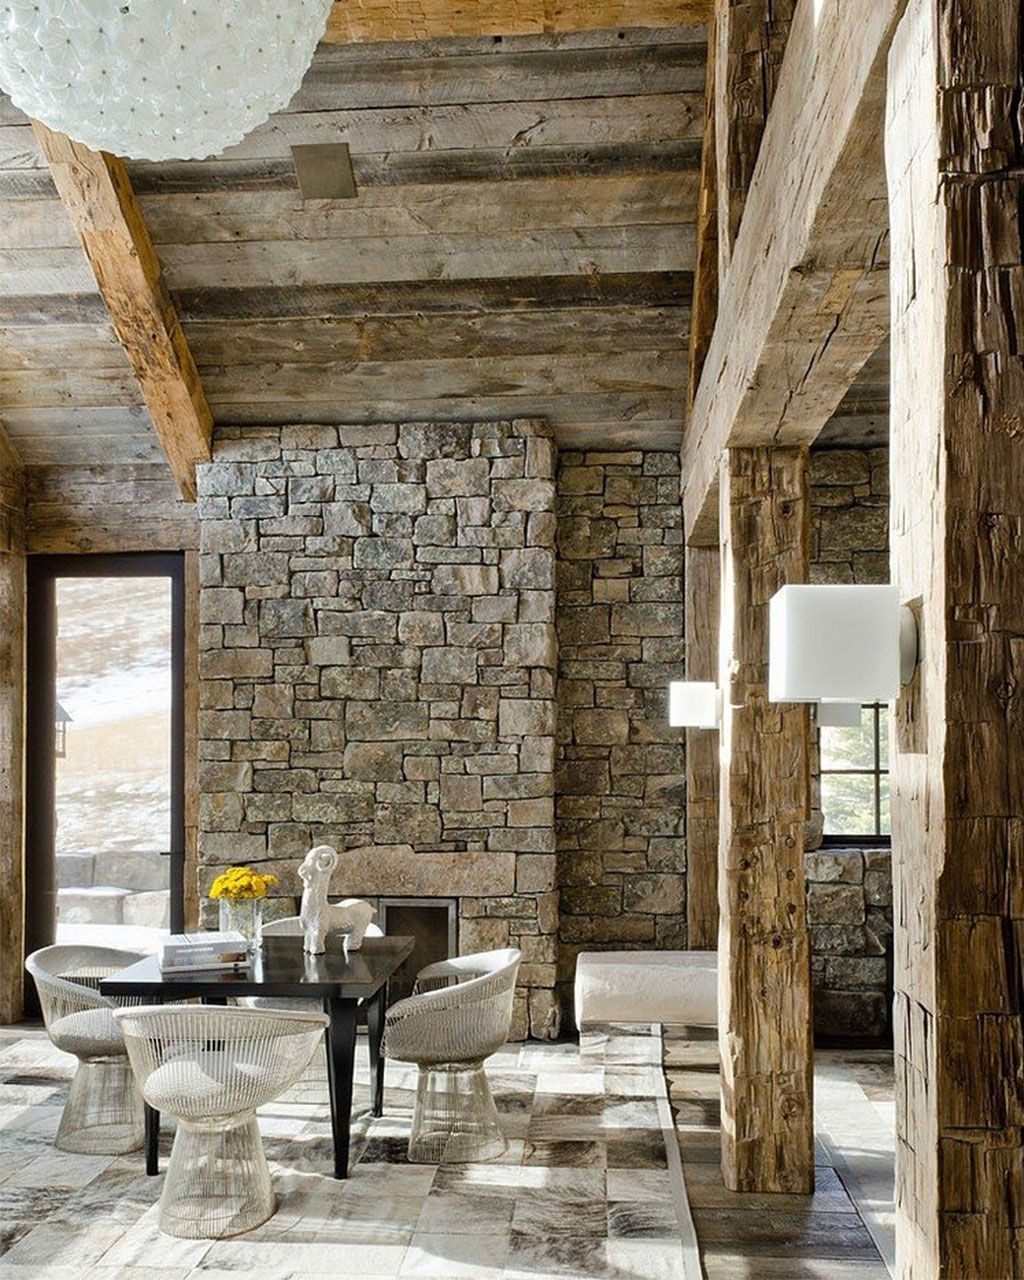 Rustic Modern rustic modern home | rustic spaces and ideas | pinterest | modern